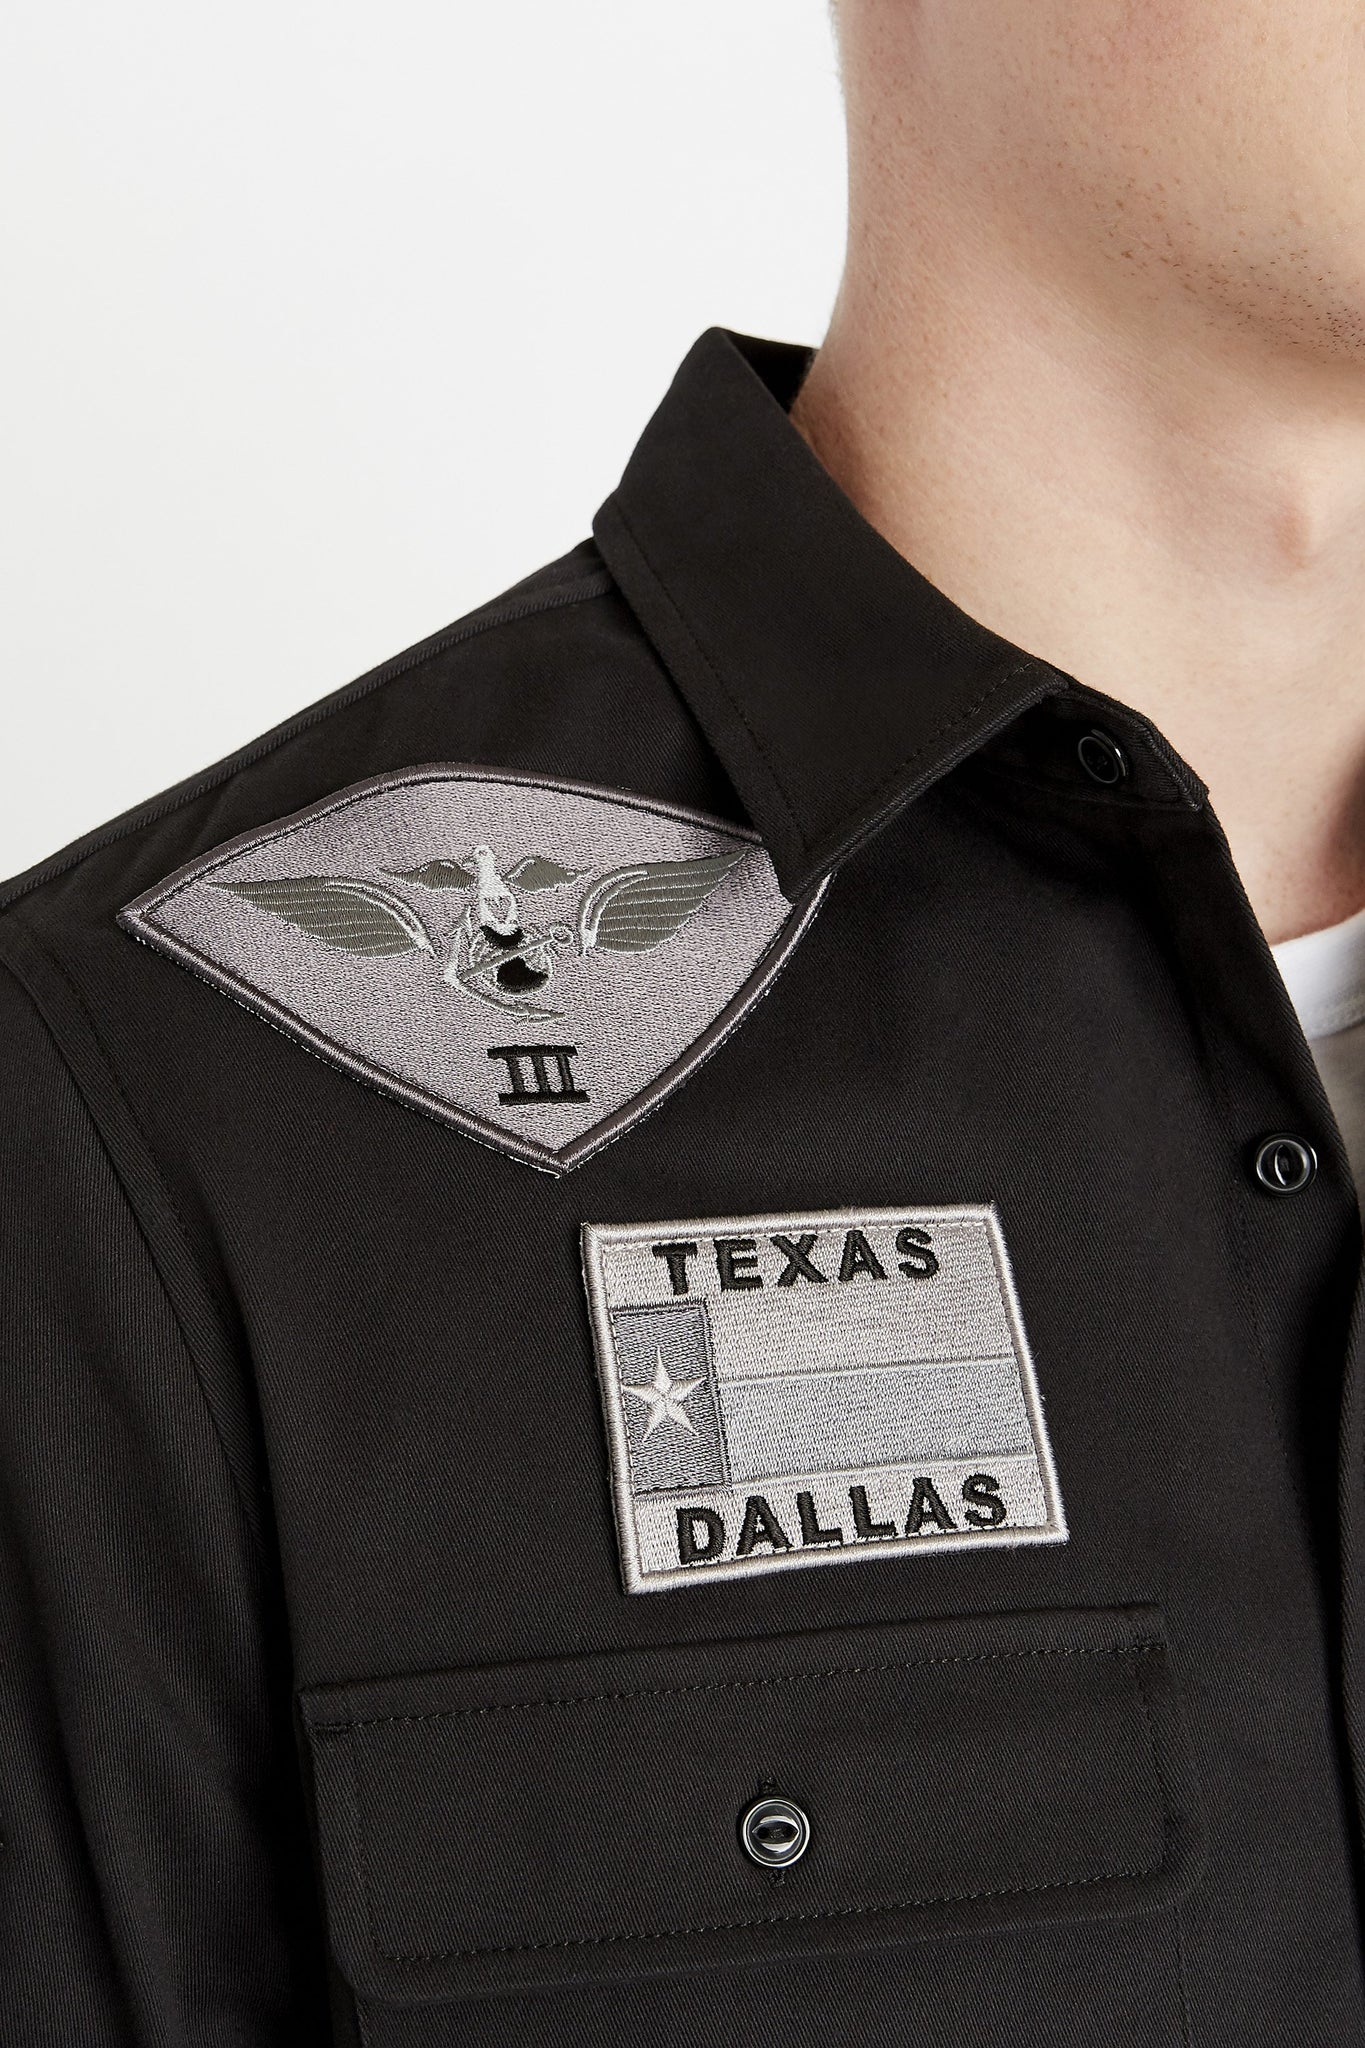 Detailed view of embroidery logo and patch above pocket on right chest